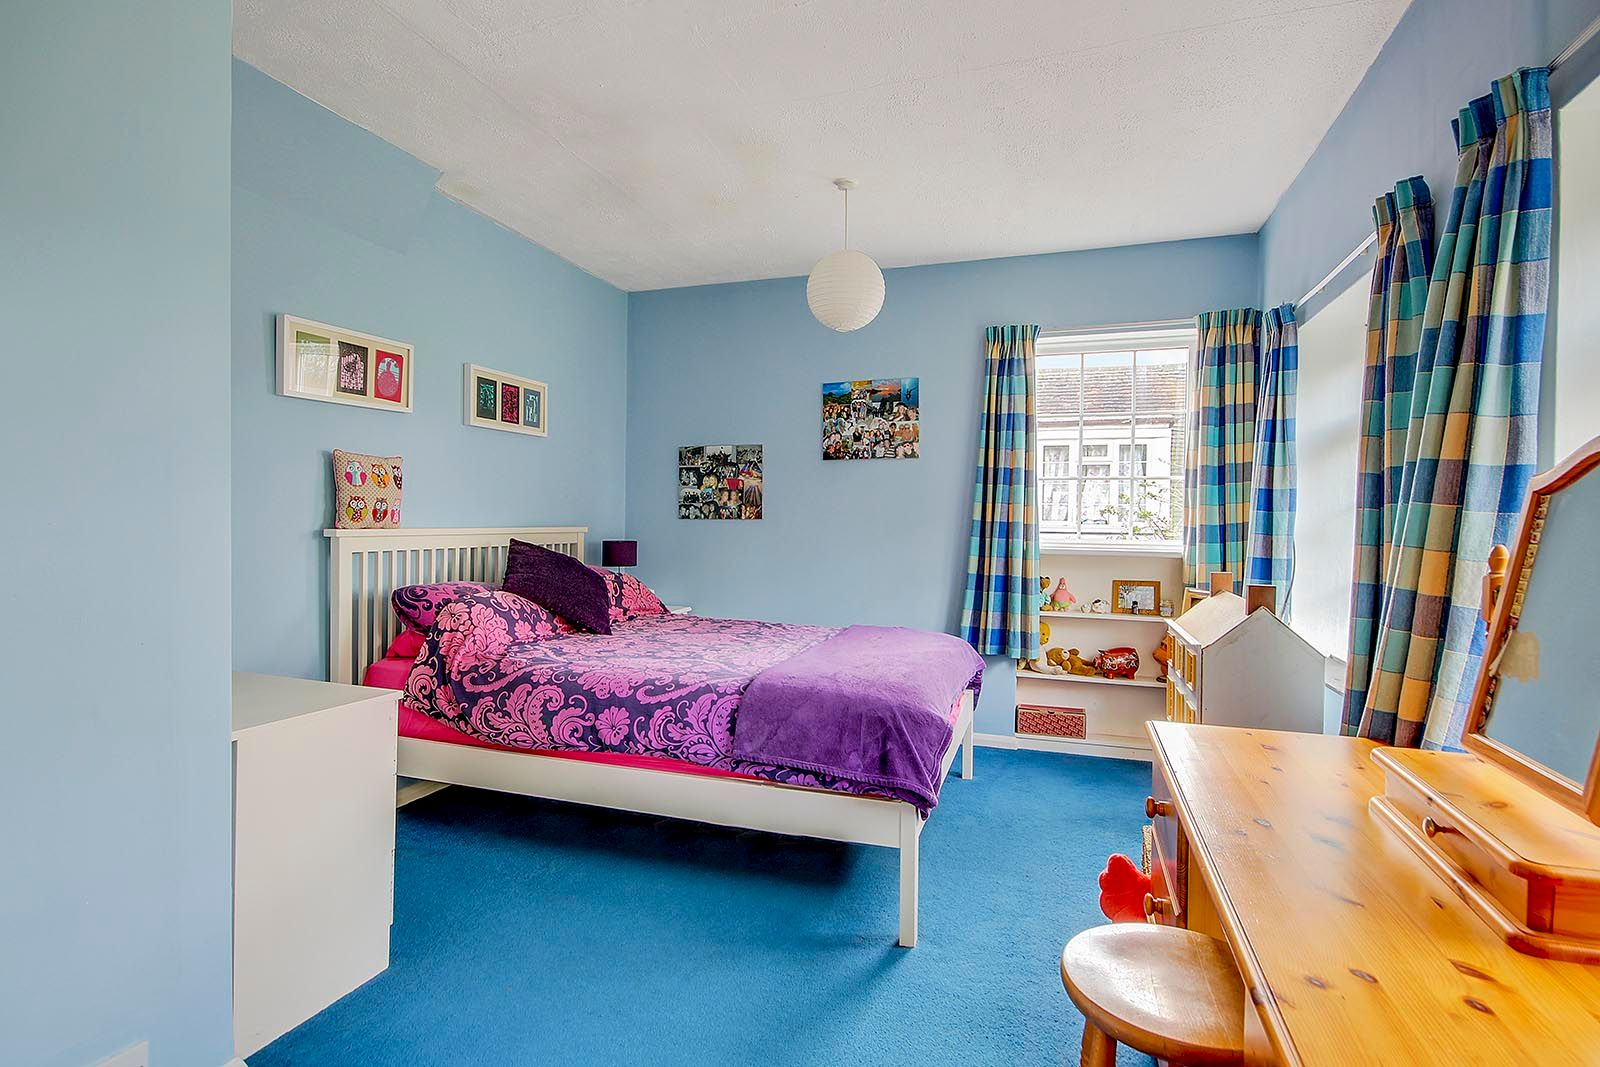 4 bed house for sale in Mill Road (COMP AUG 19) 21